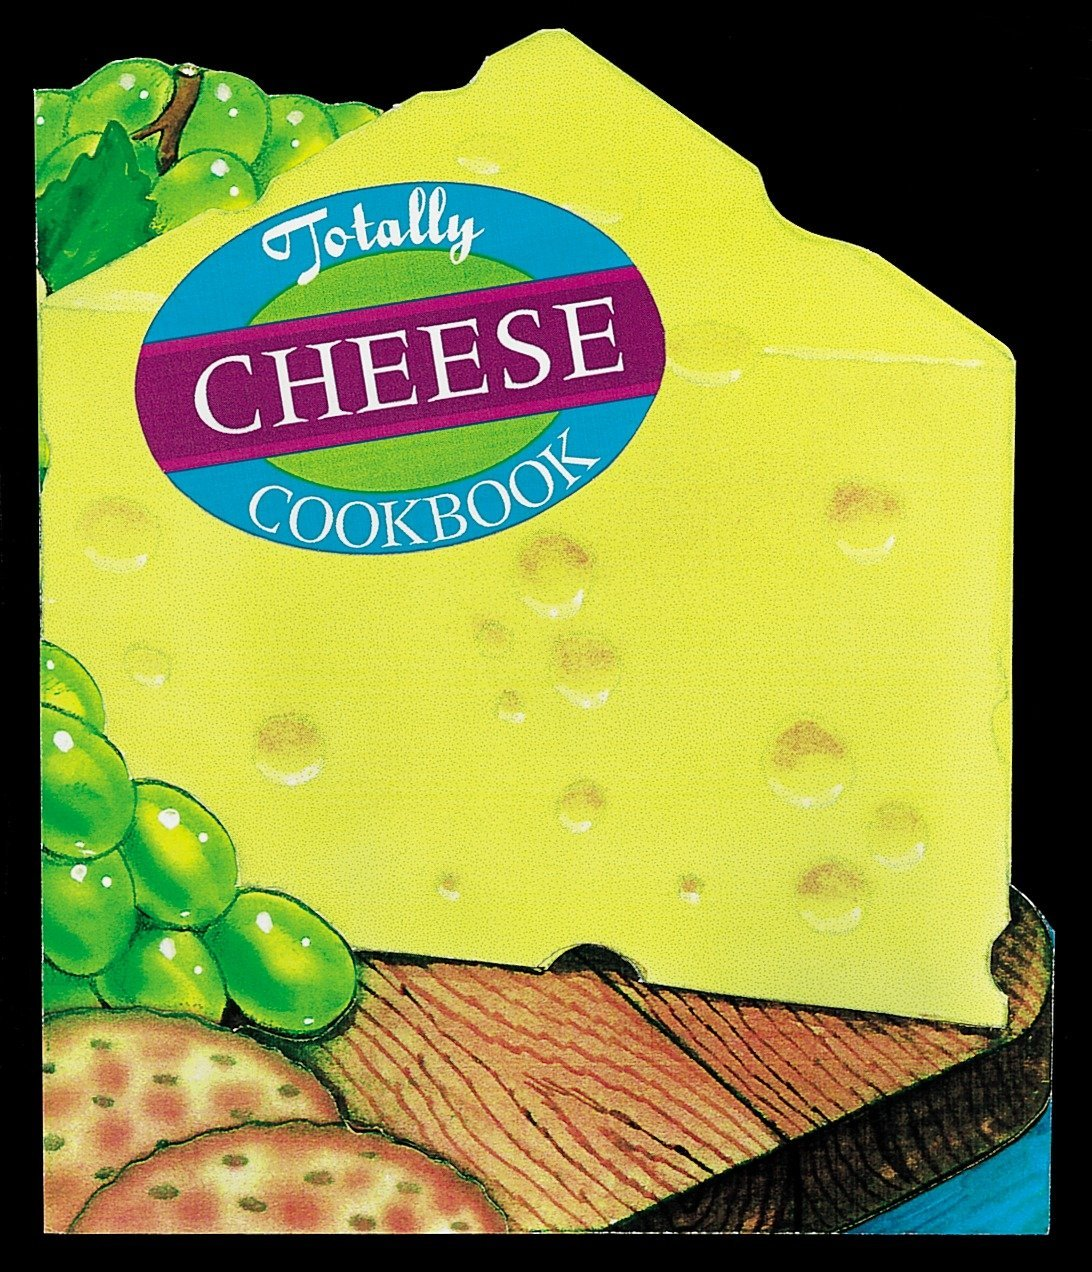 Totally Cheese Cookbook (Totally Cookbooks Series)